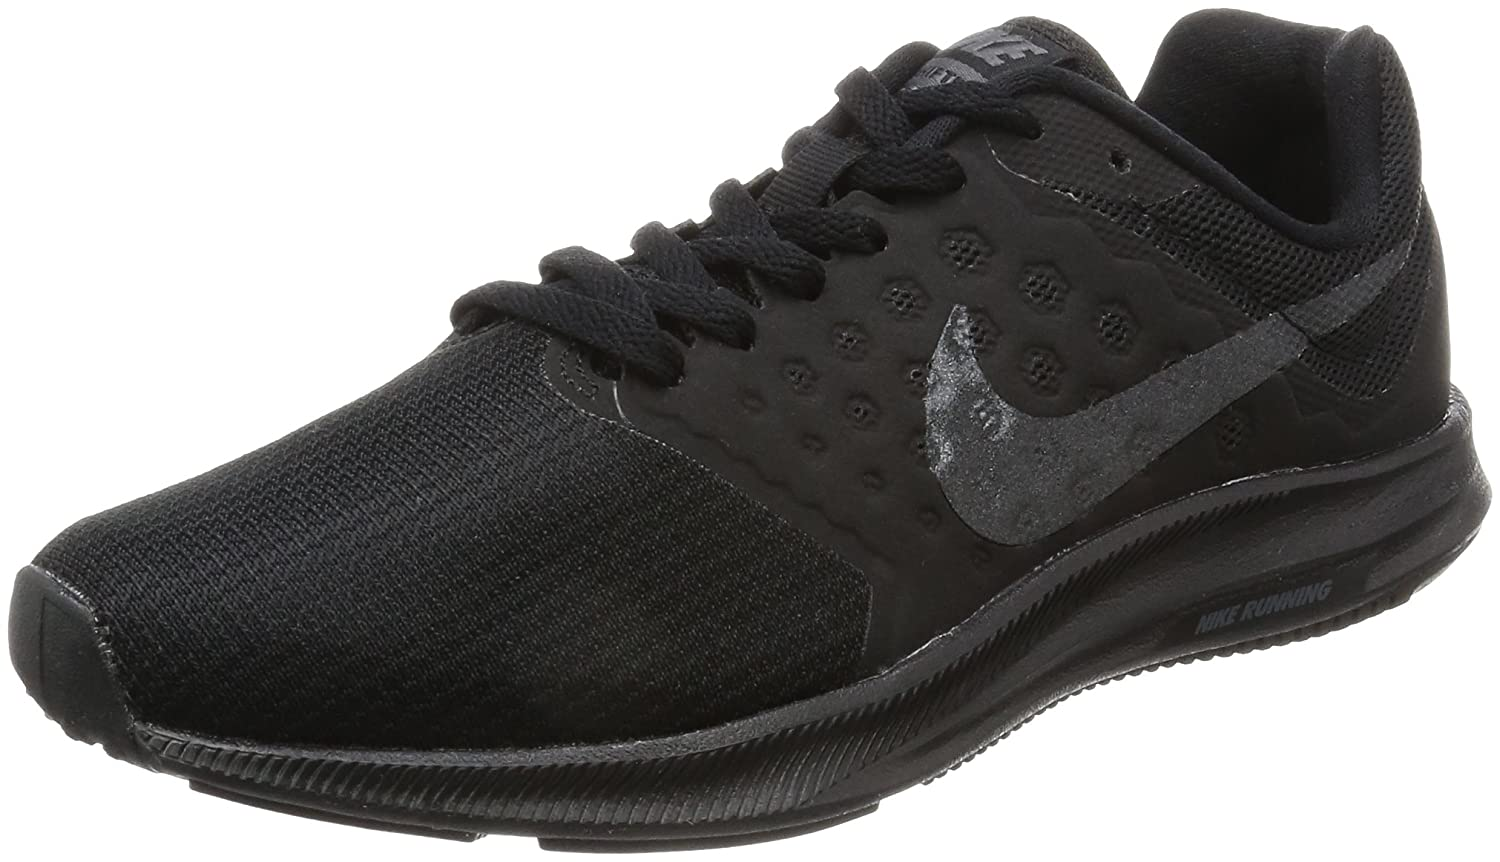 Black Mtlc Hematite Anthracite Nike Womens Downshifter 7 Running shoes